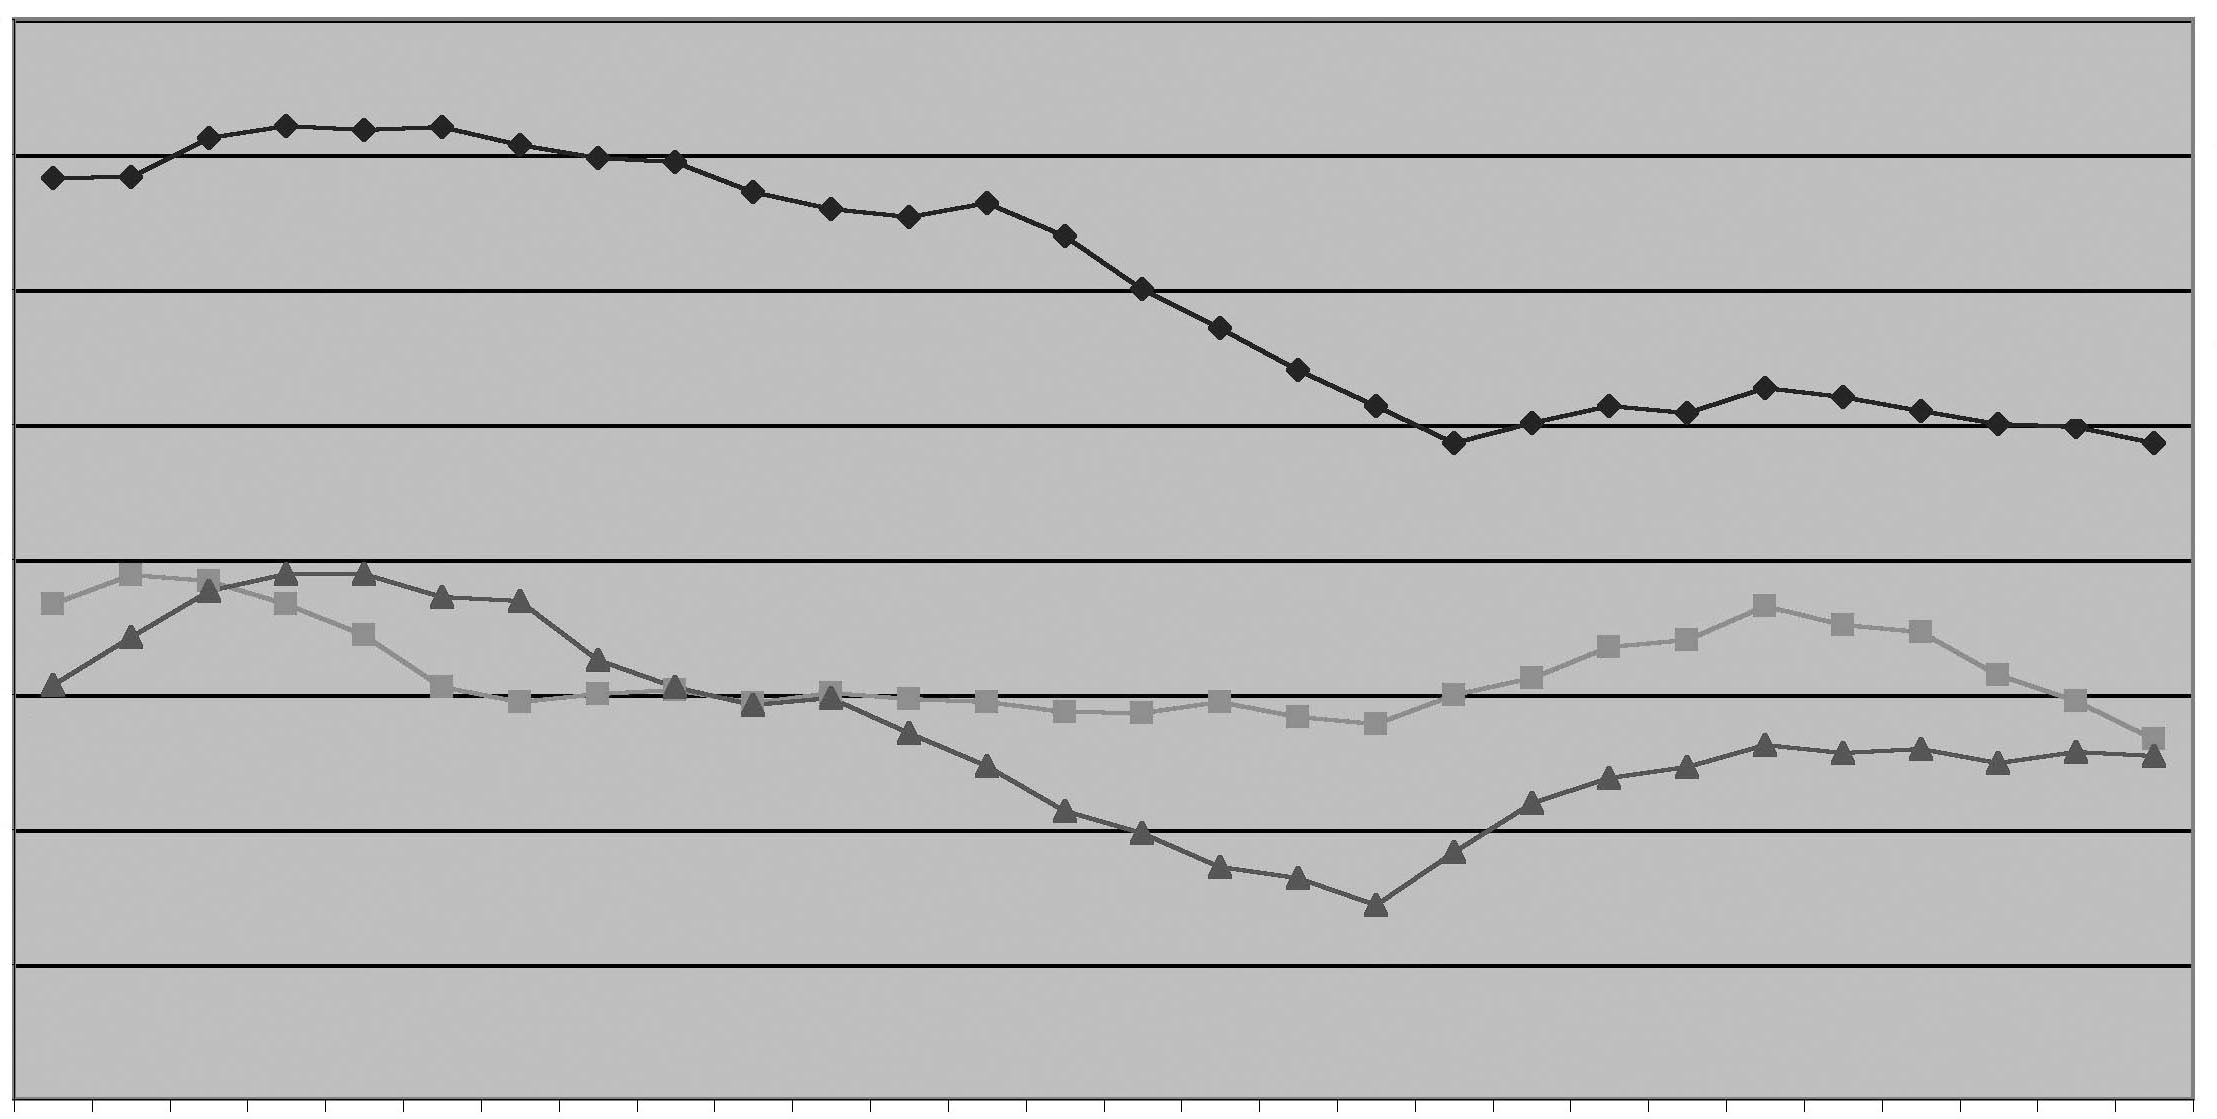 Figure 16 80% 70% 60% Trends in Past Thirty-Day Substance Use, 12th Graders, 1975-2002 68.2% Alcohol 50% 40% 36.7% 48.6% 48.6% 30% 20% 10% 30.7% Cigarettes Any Illicit Drug 27.8% 14.4% 26.7% 25.